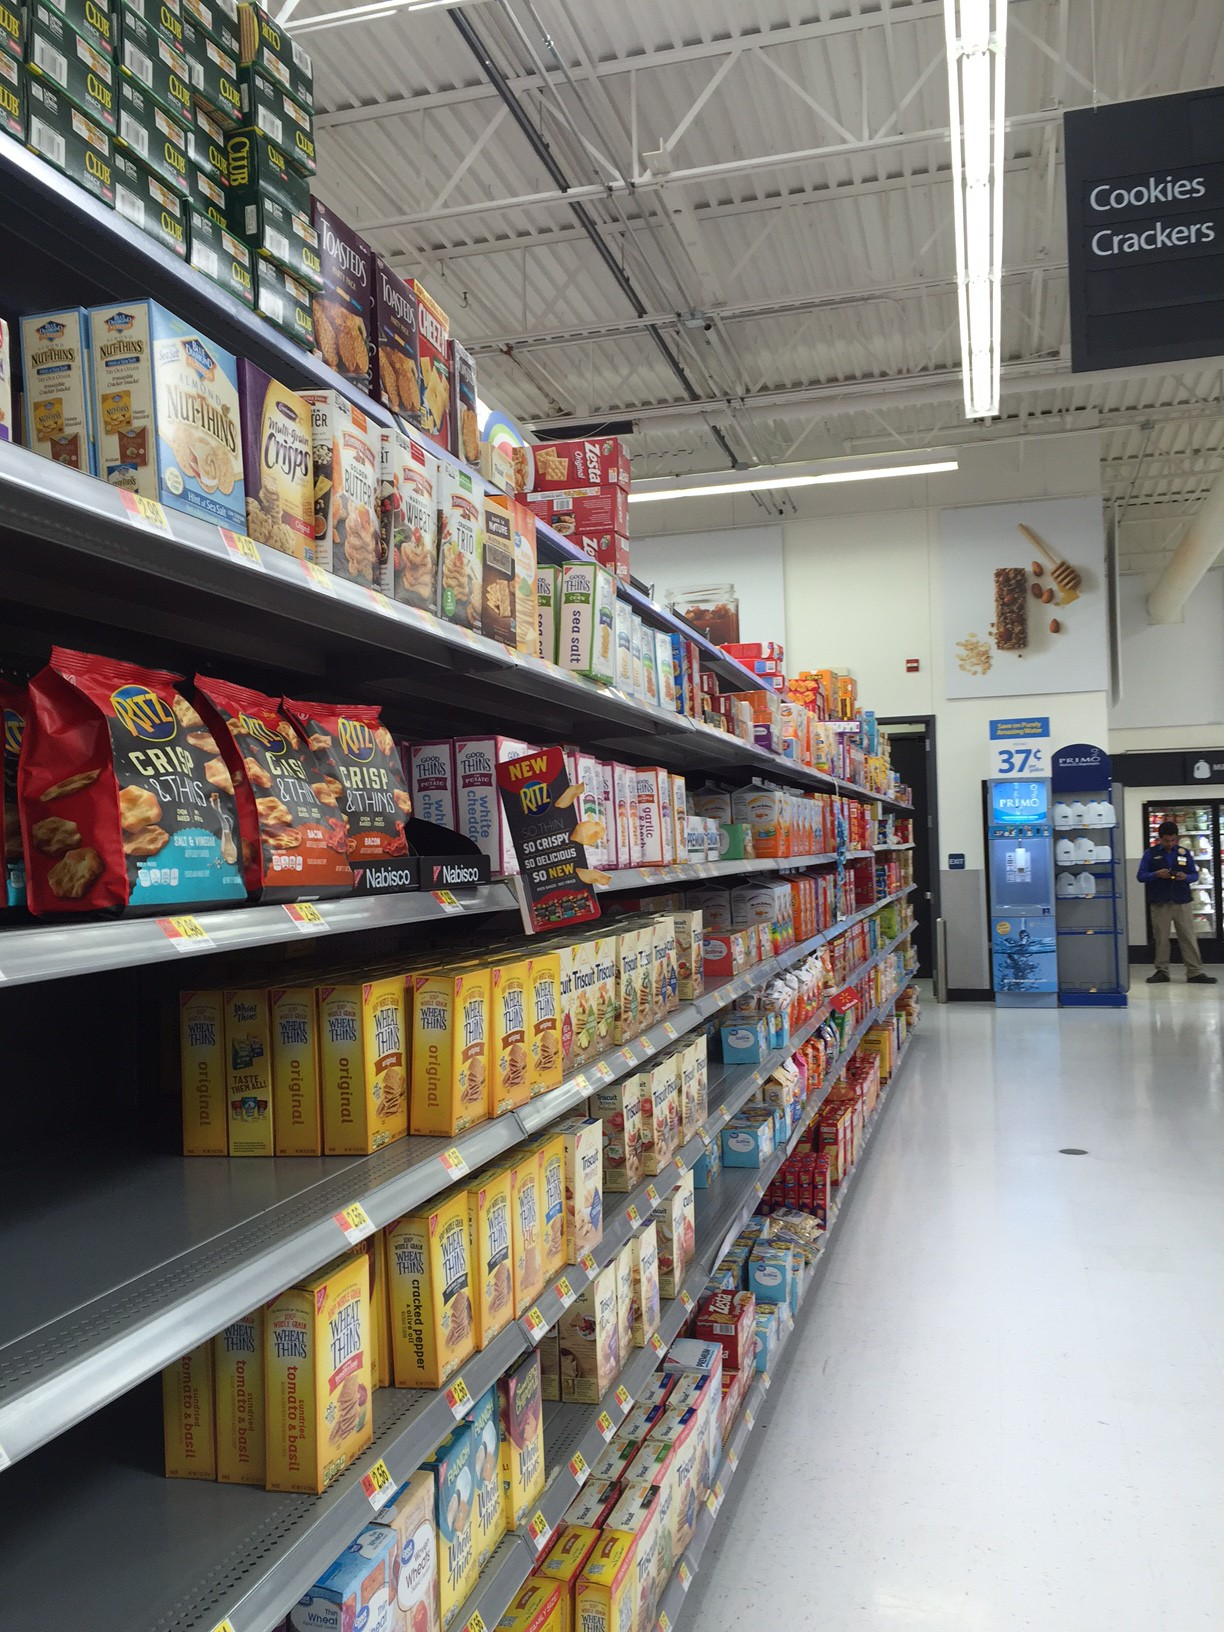 Crackers aisle